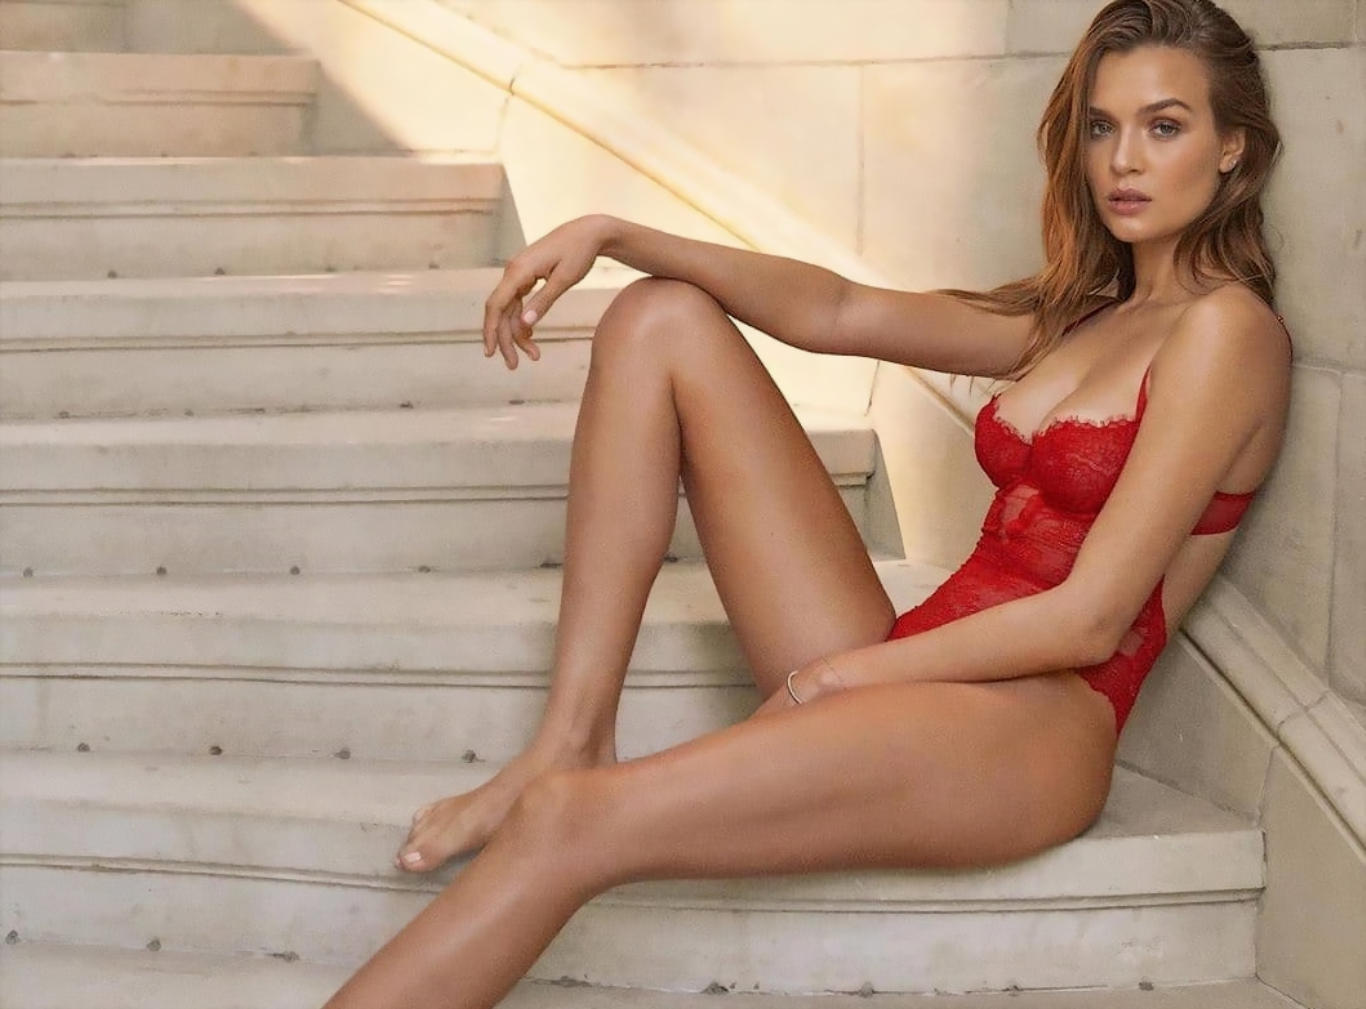 Josephine Skriver Red Lingerie Hot Wallpaper